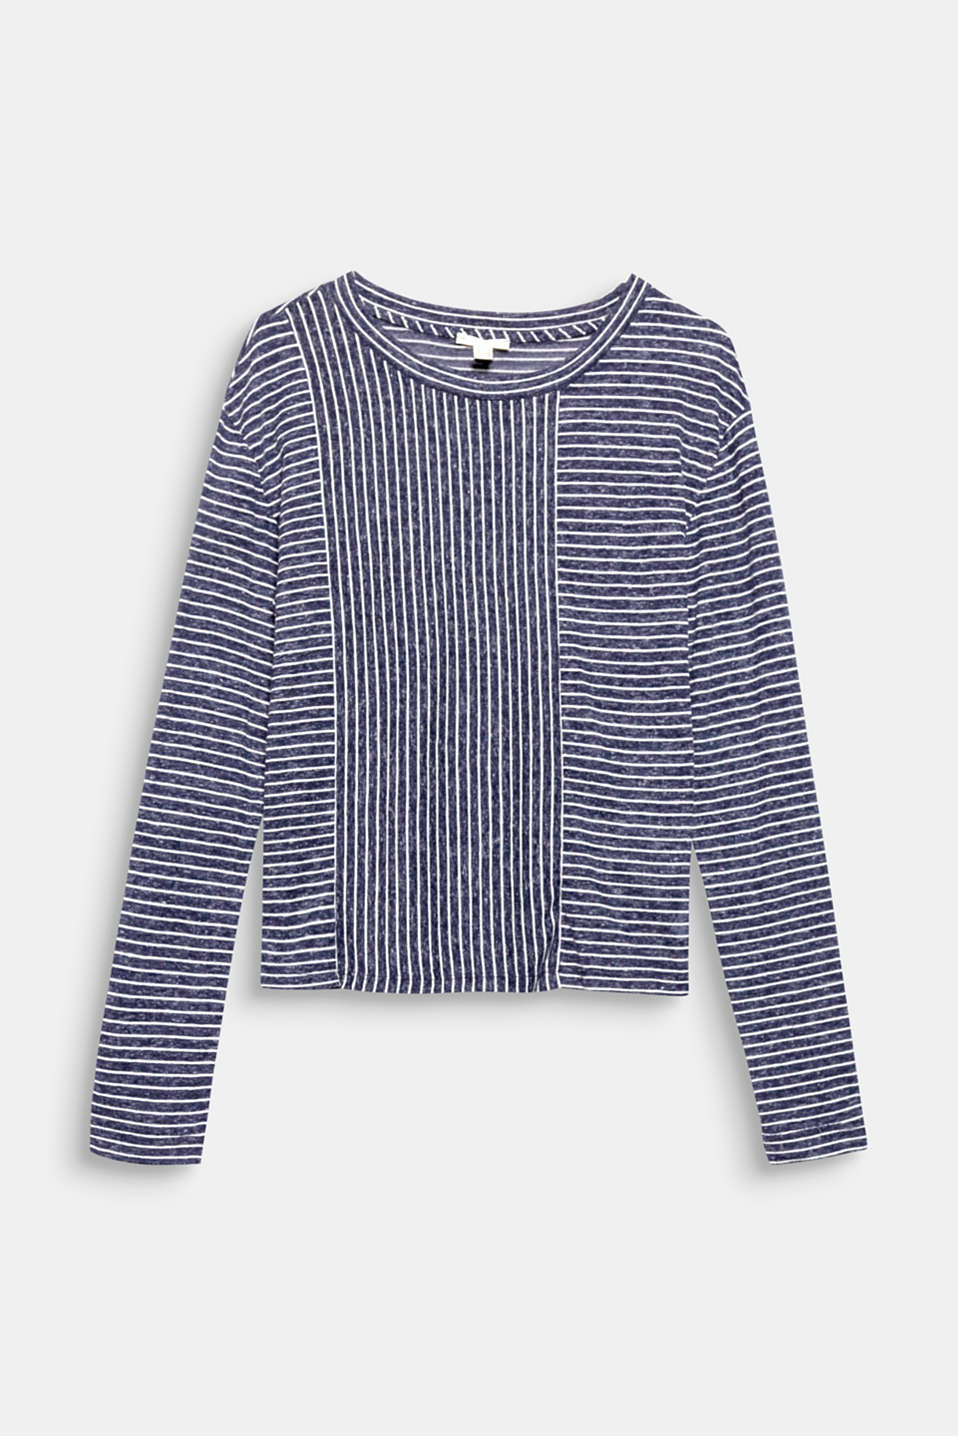 This boxy, short long sleeve top with airy linen and a melange look is delicate and lightweight and features modern stripes!